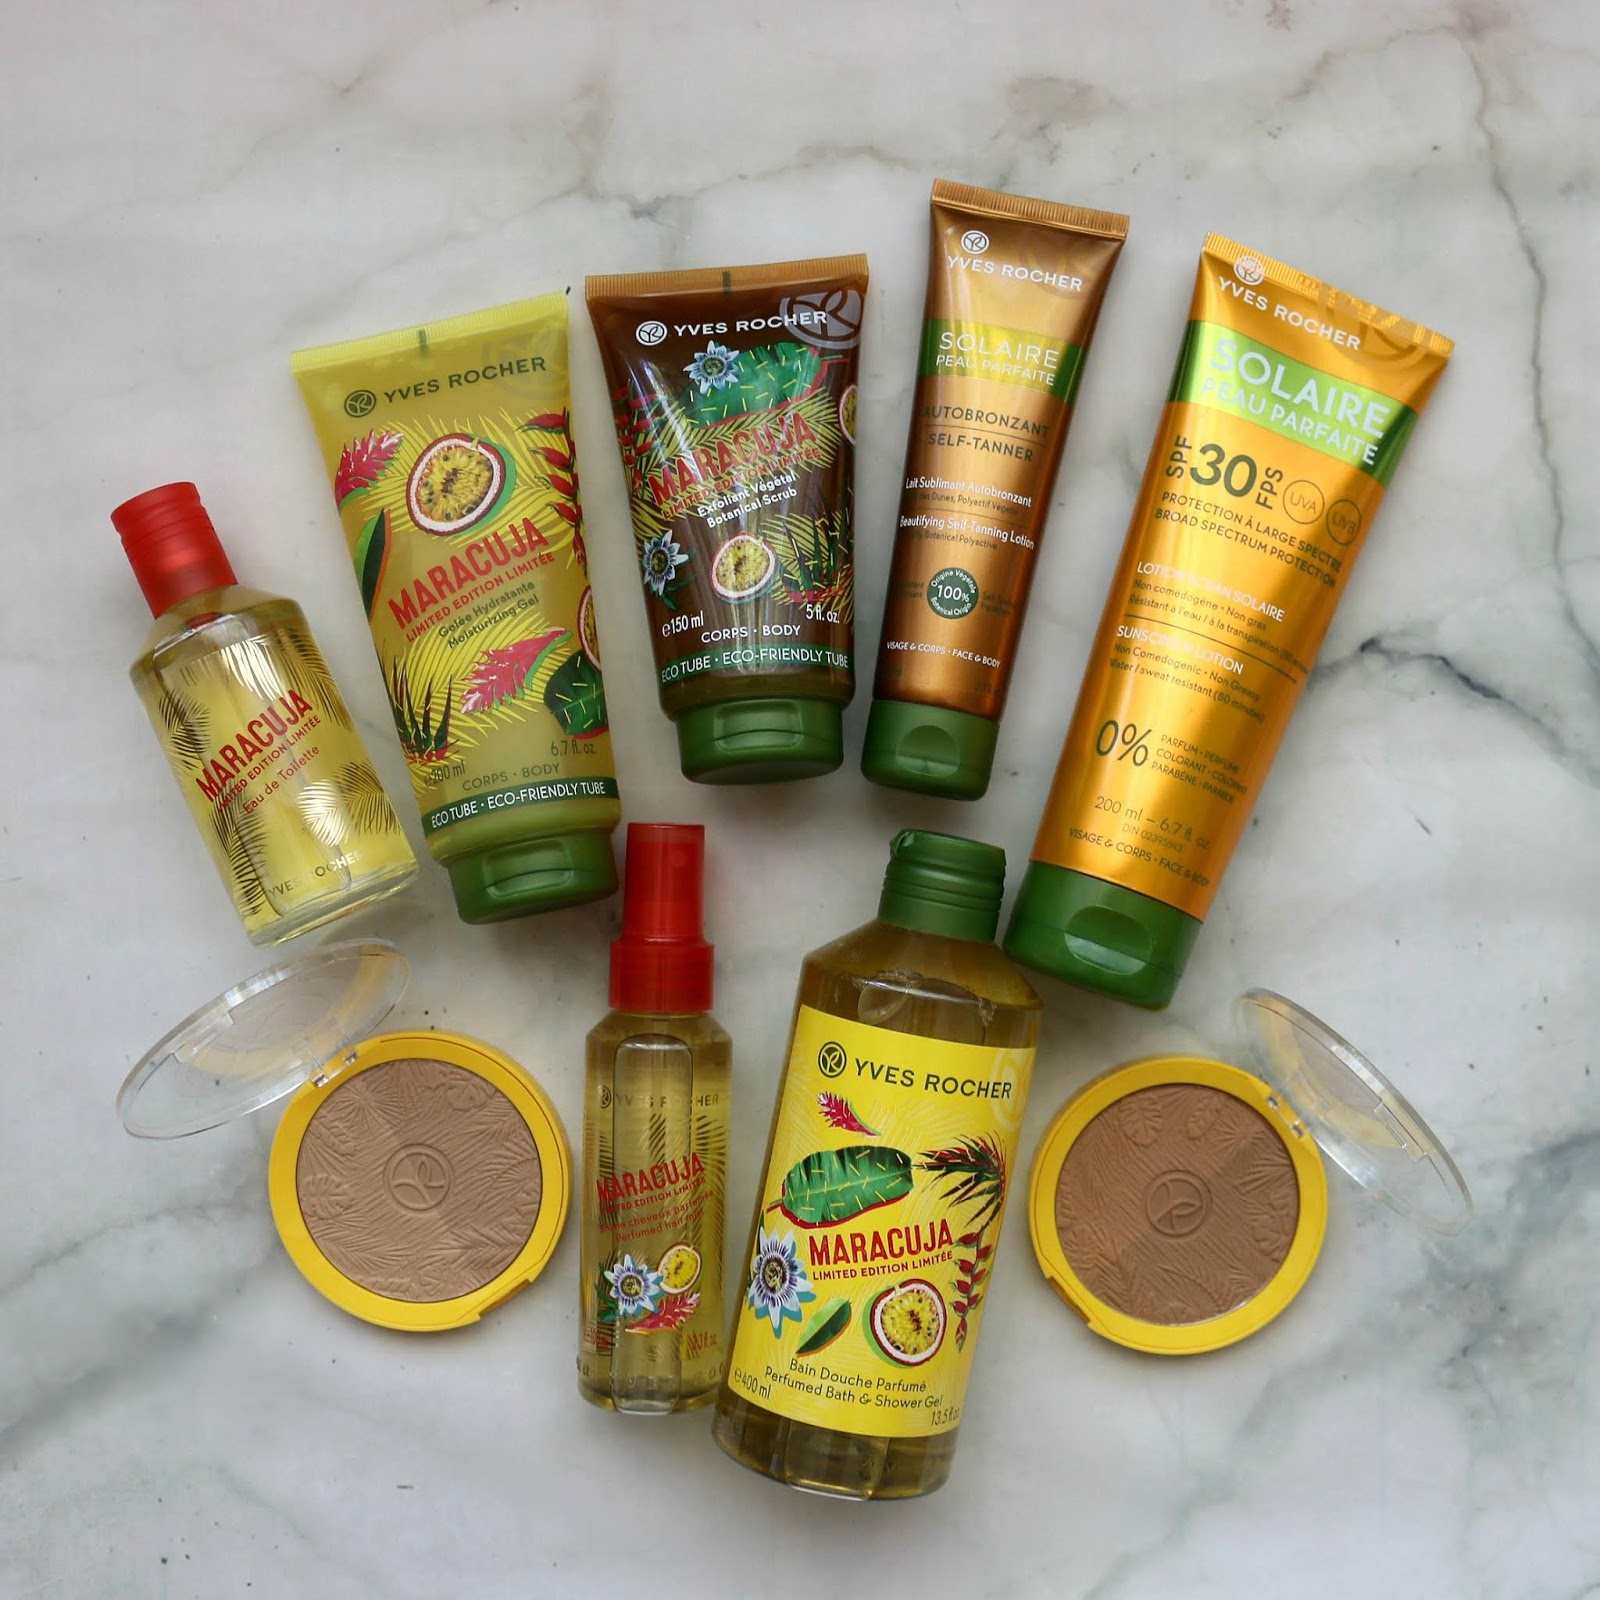 Yves Rocher Summer Beauty Must-Haves